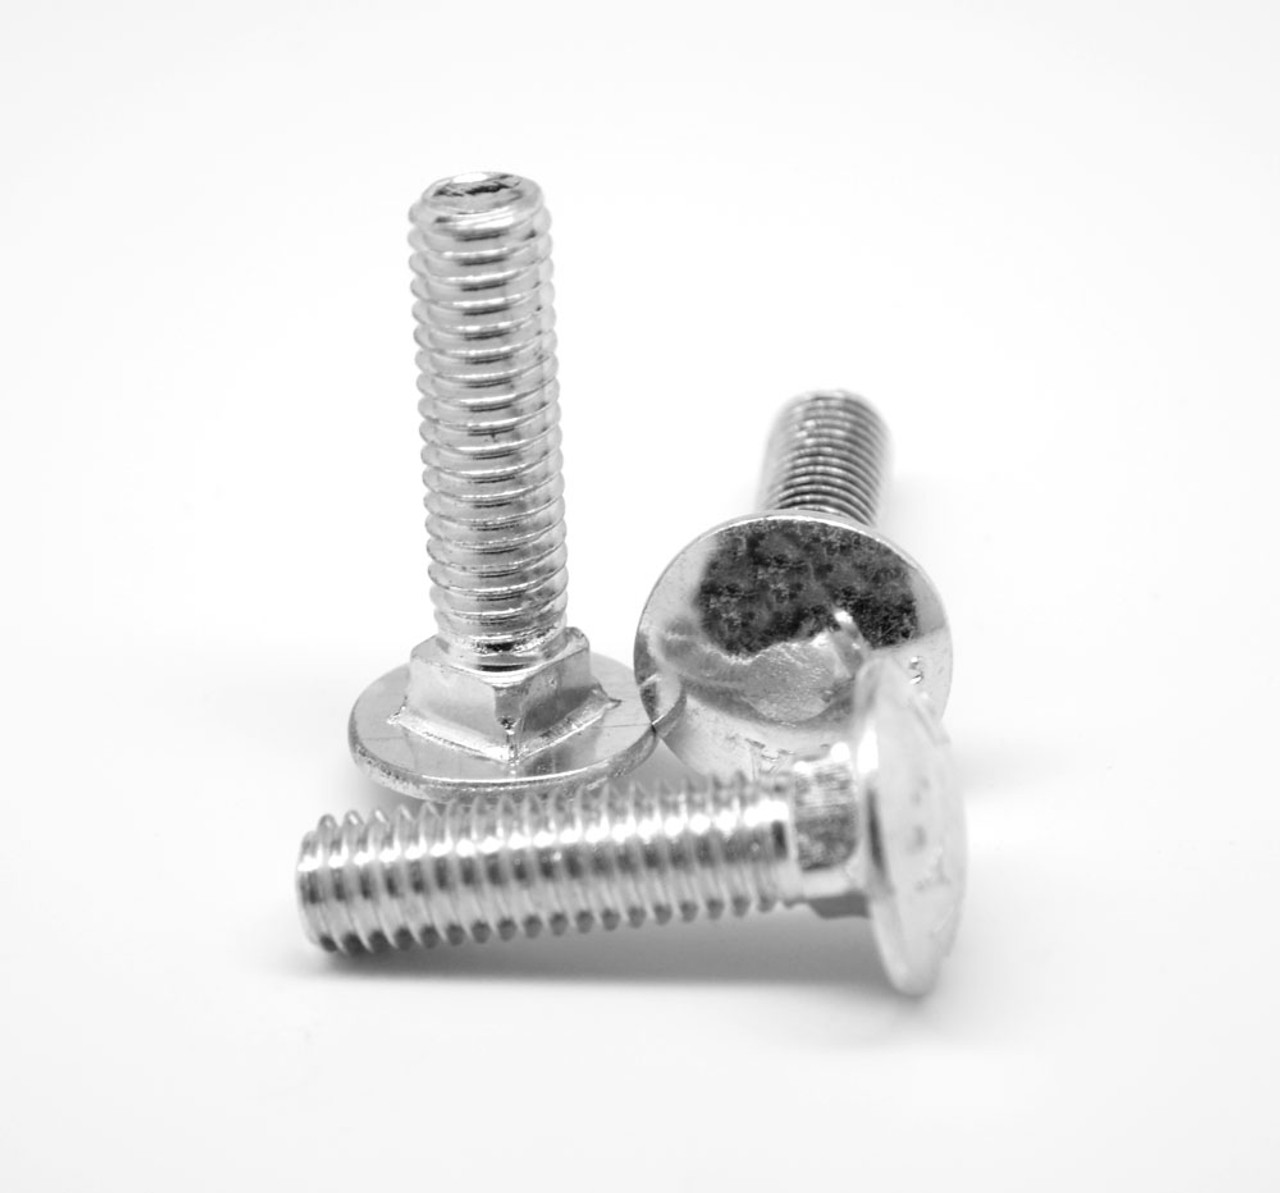 """#10-24 x 2"""" (FT) Coarse Thread A307 Grade A Carriage Bolt Low Carbon Steel Zinc Plated"""